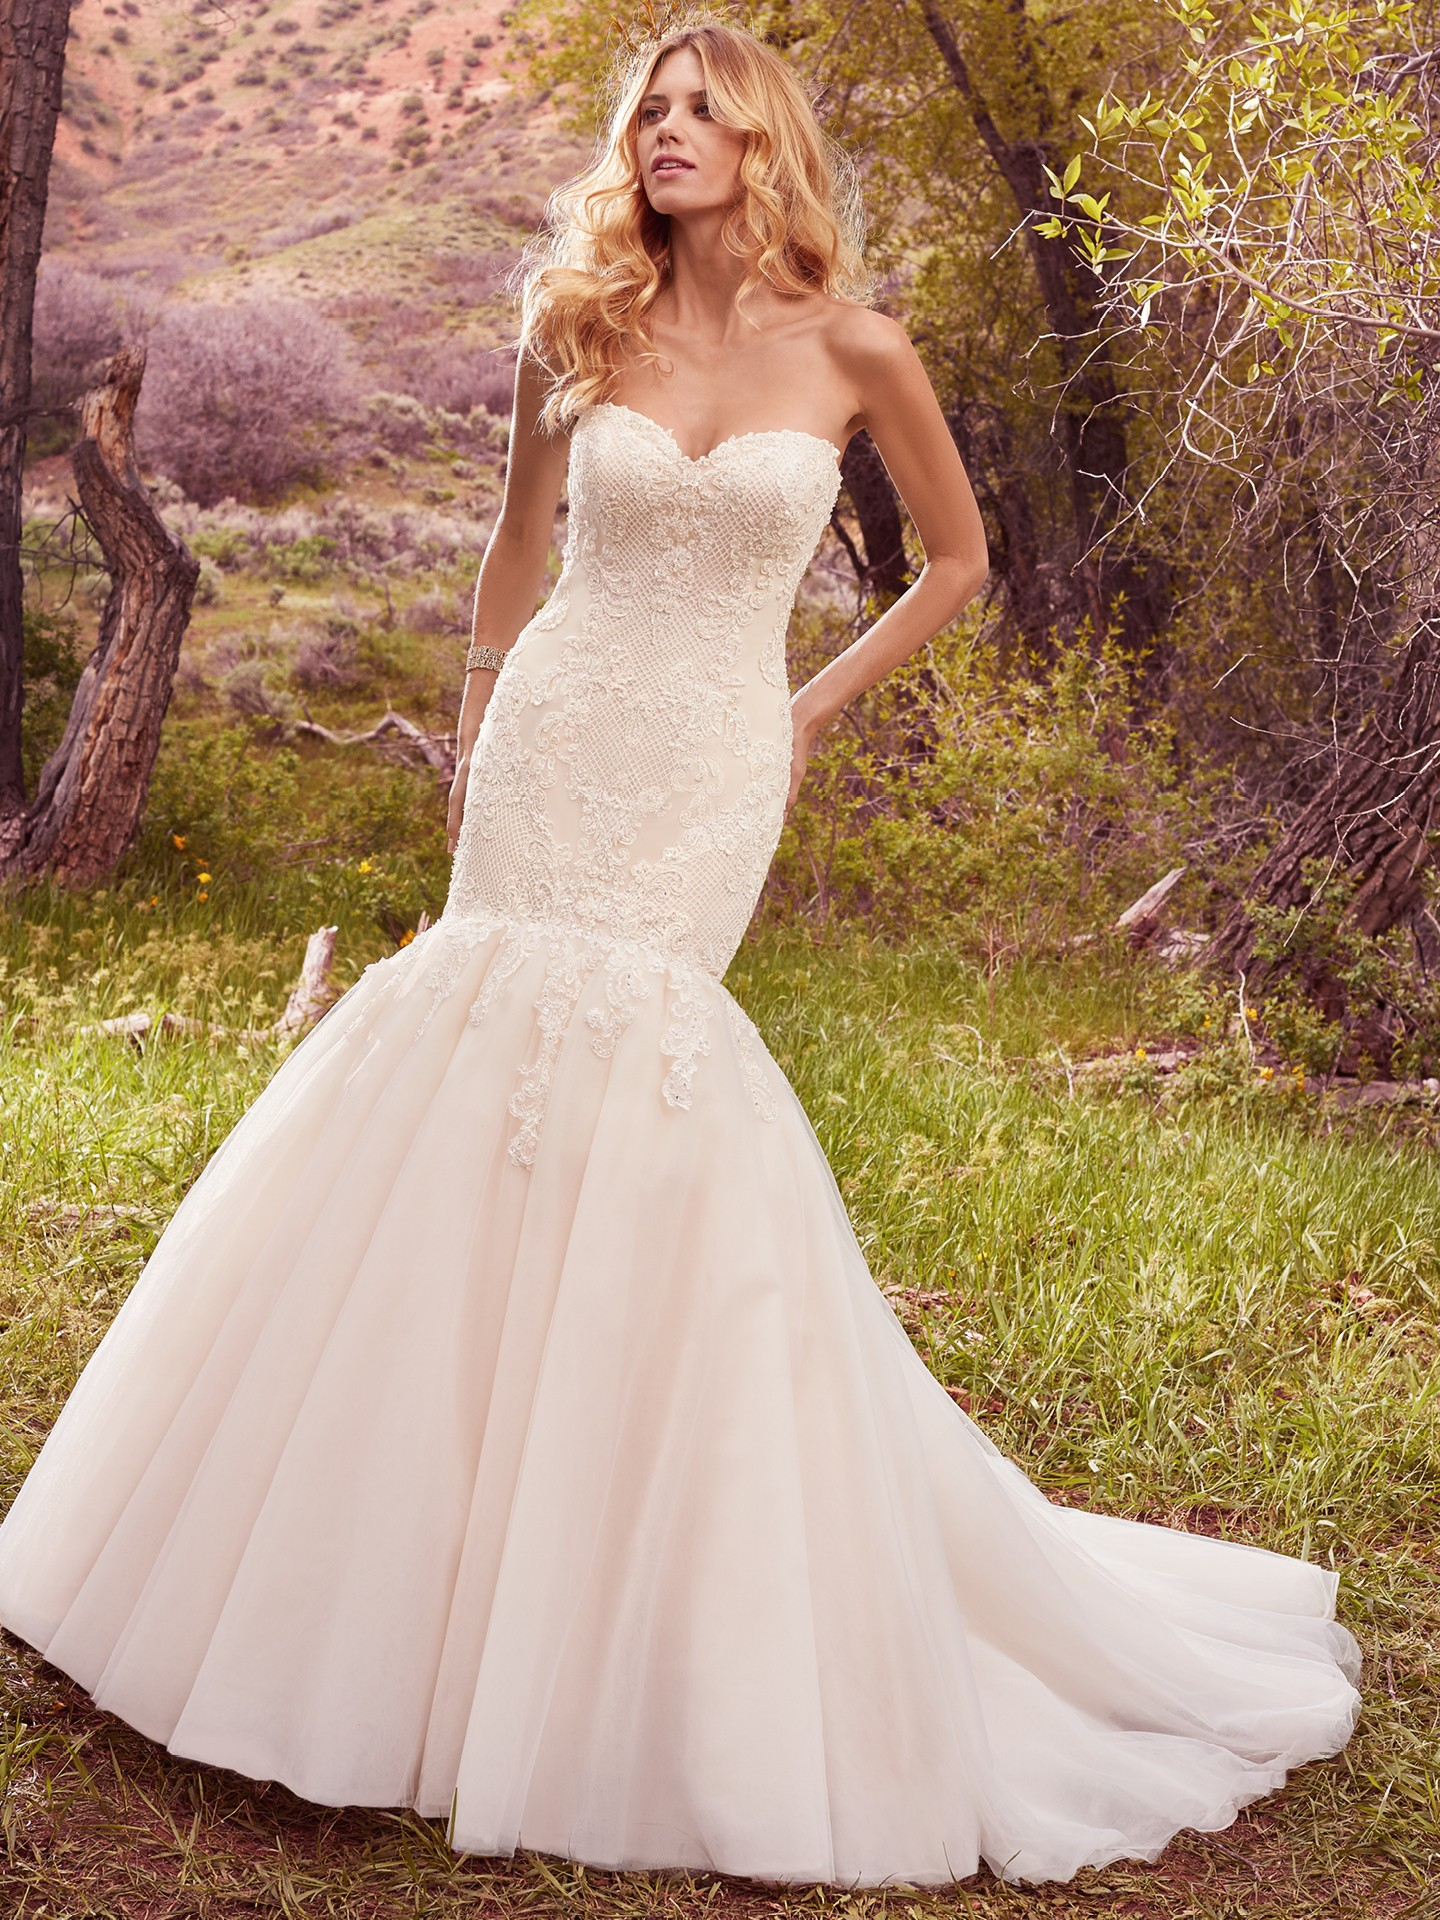 Even More Blush Wedding Dresses by Maggie Sottero - Love Maggie ...